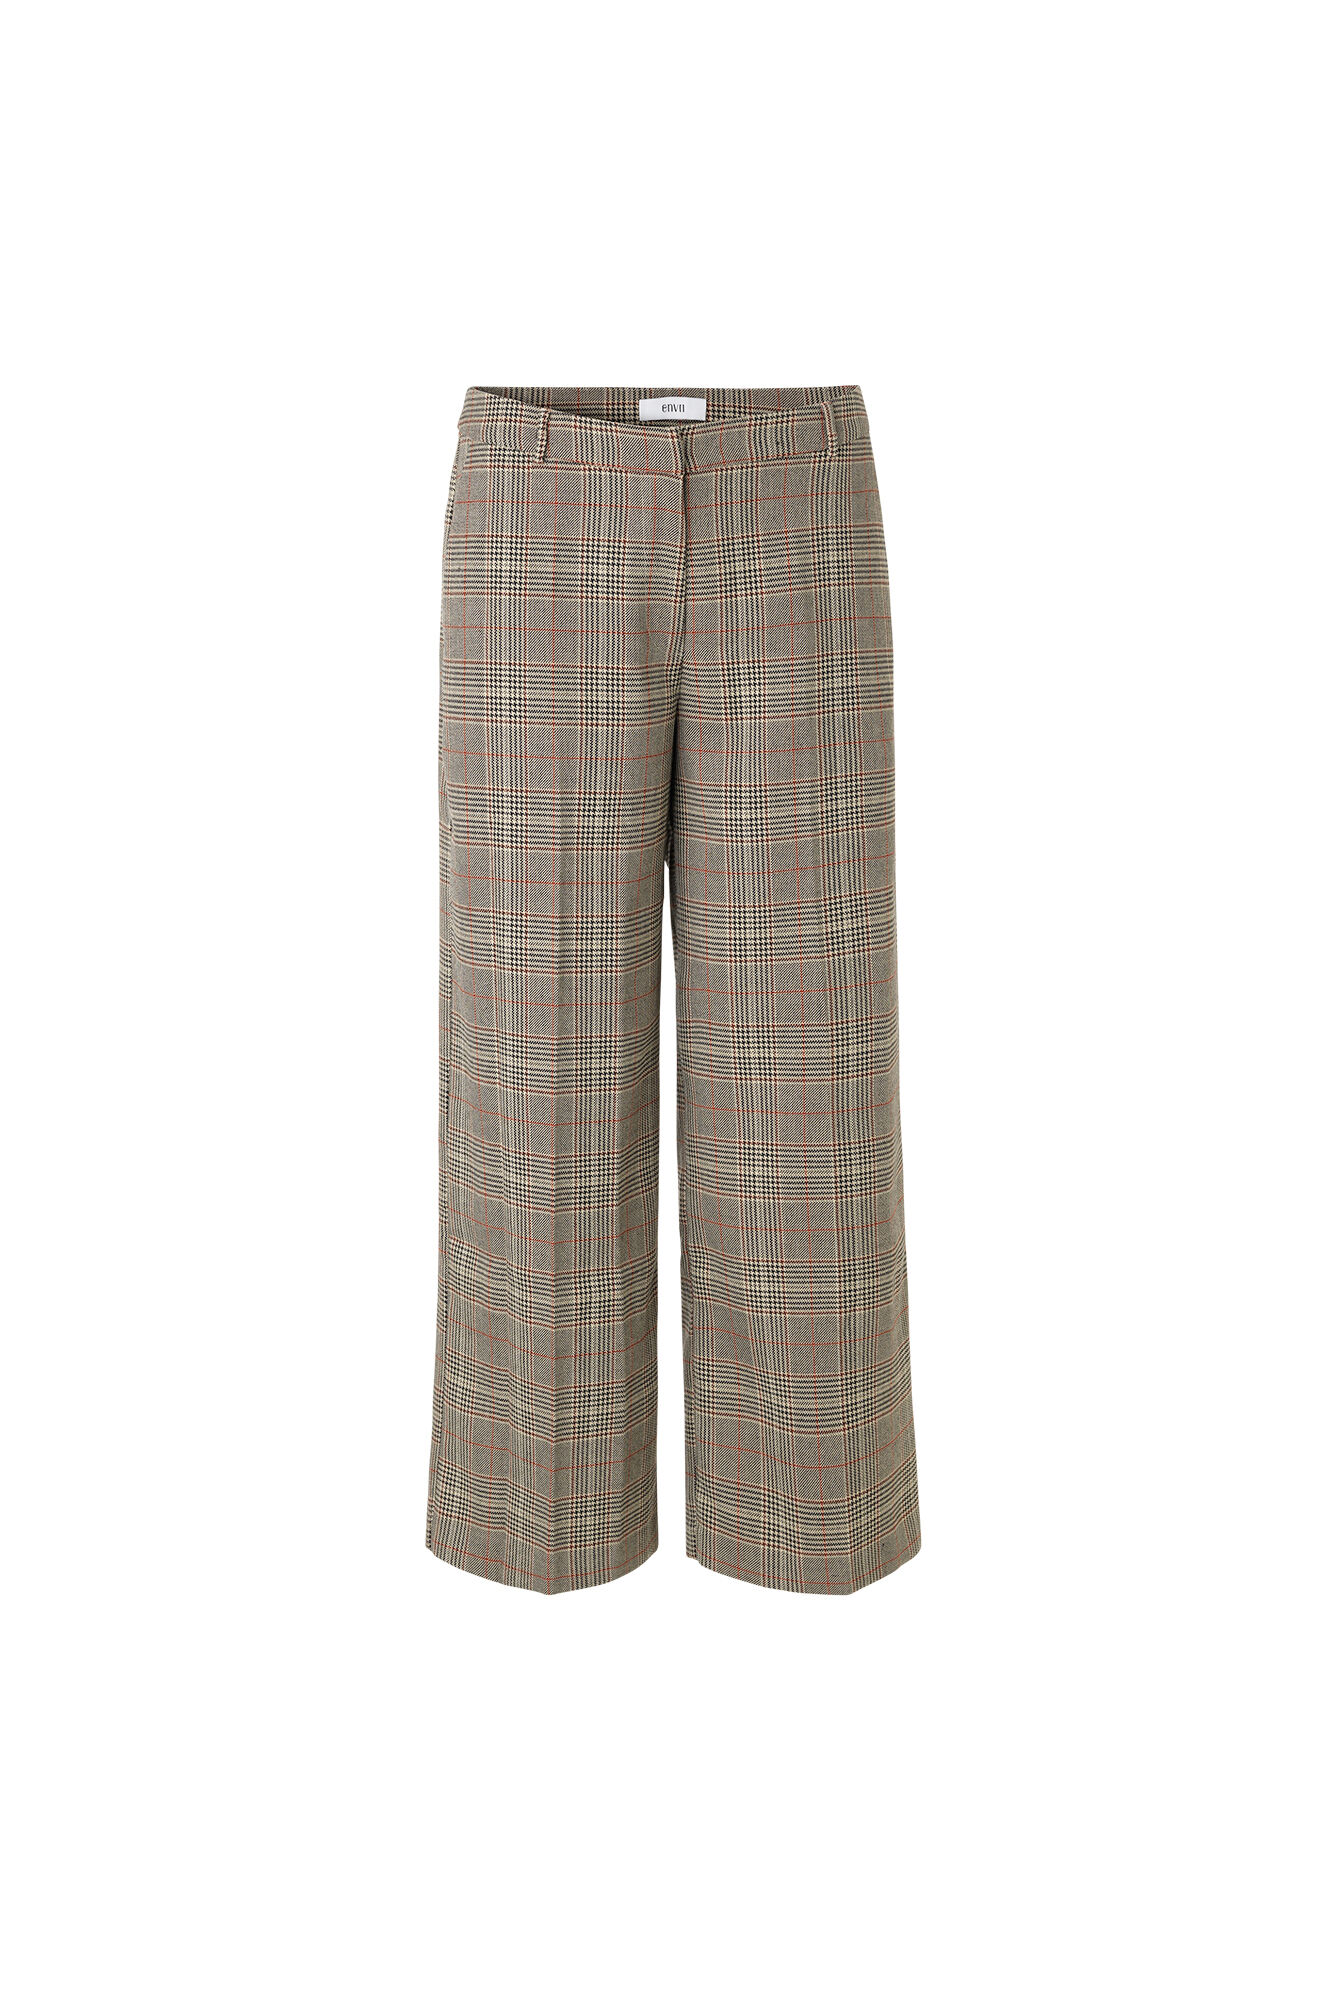 ENAMBER PANTS 6472, TWEED CHECK